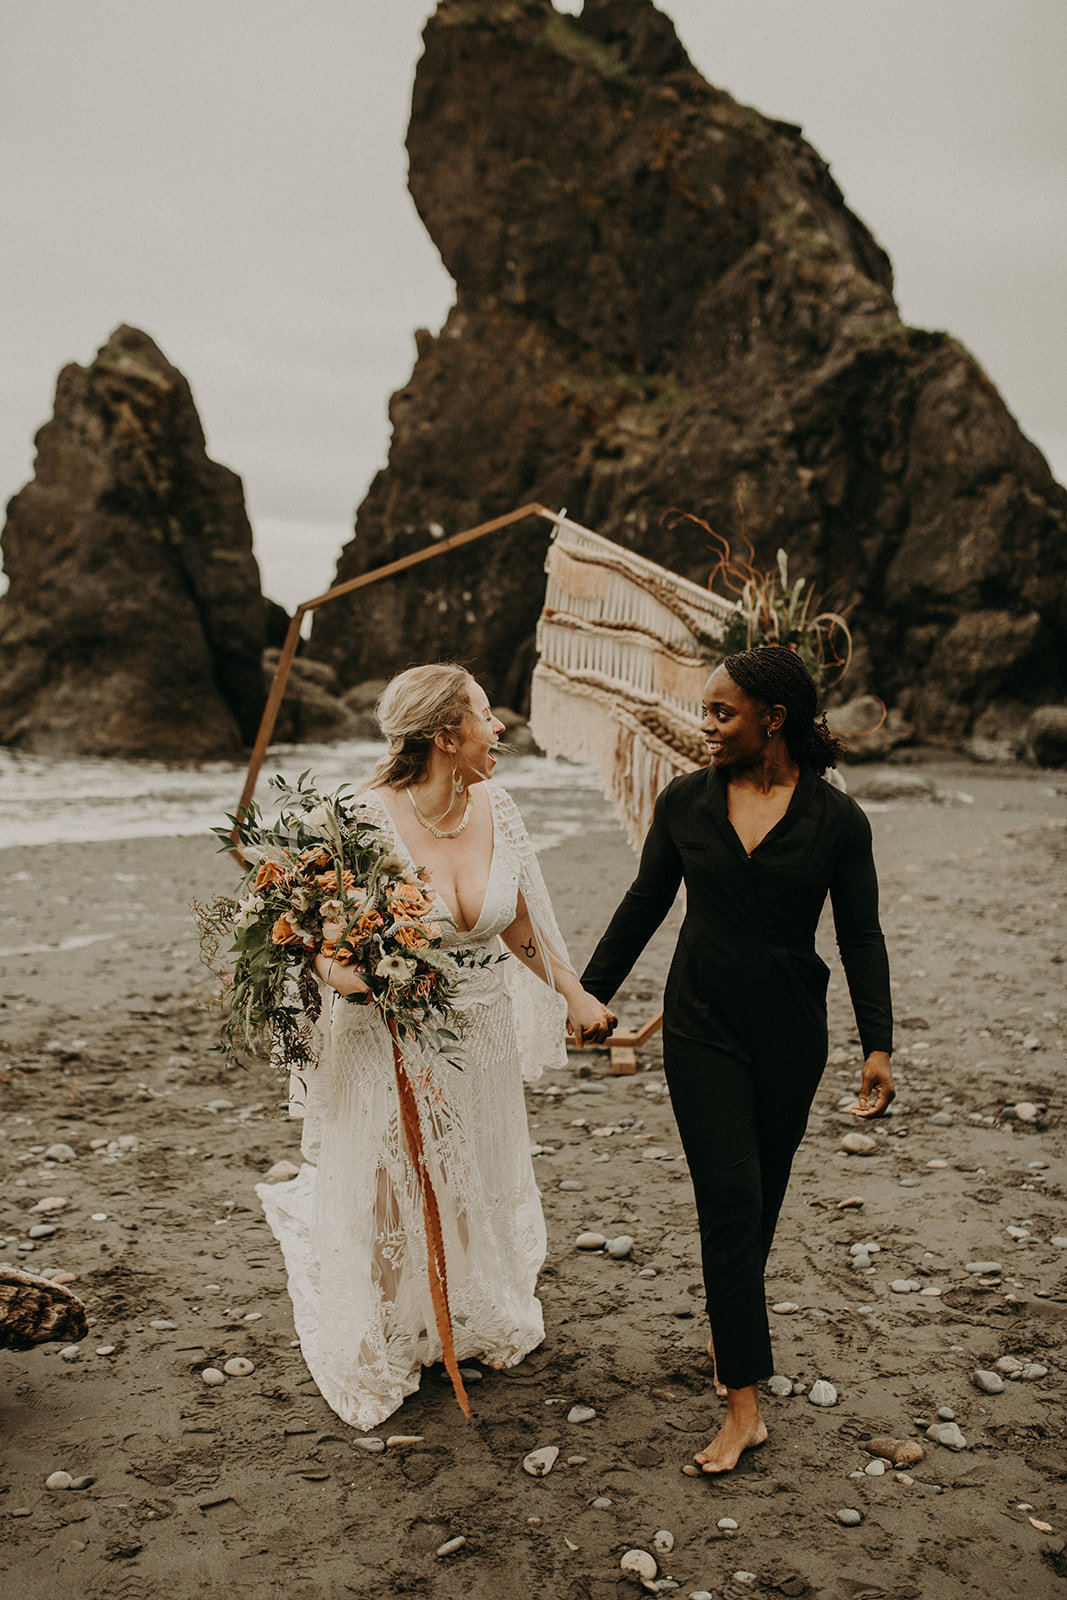 Ruby_Beach_Styled_Elopement_-_Run_Away_with_Me_Elopement_Collective_-_Kamra_Fuller_Photography_-_Ceremony-73